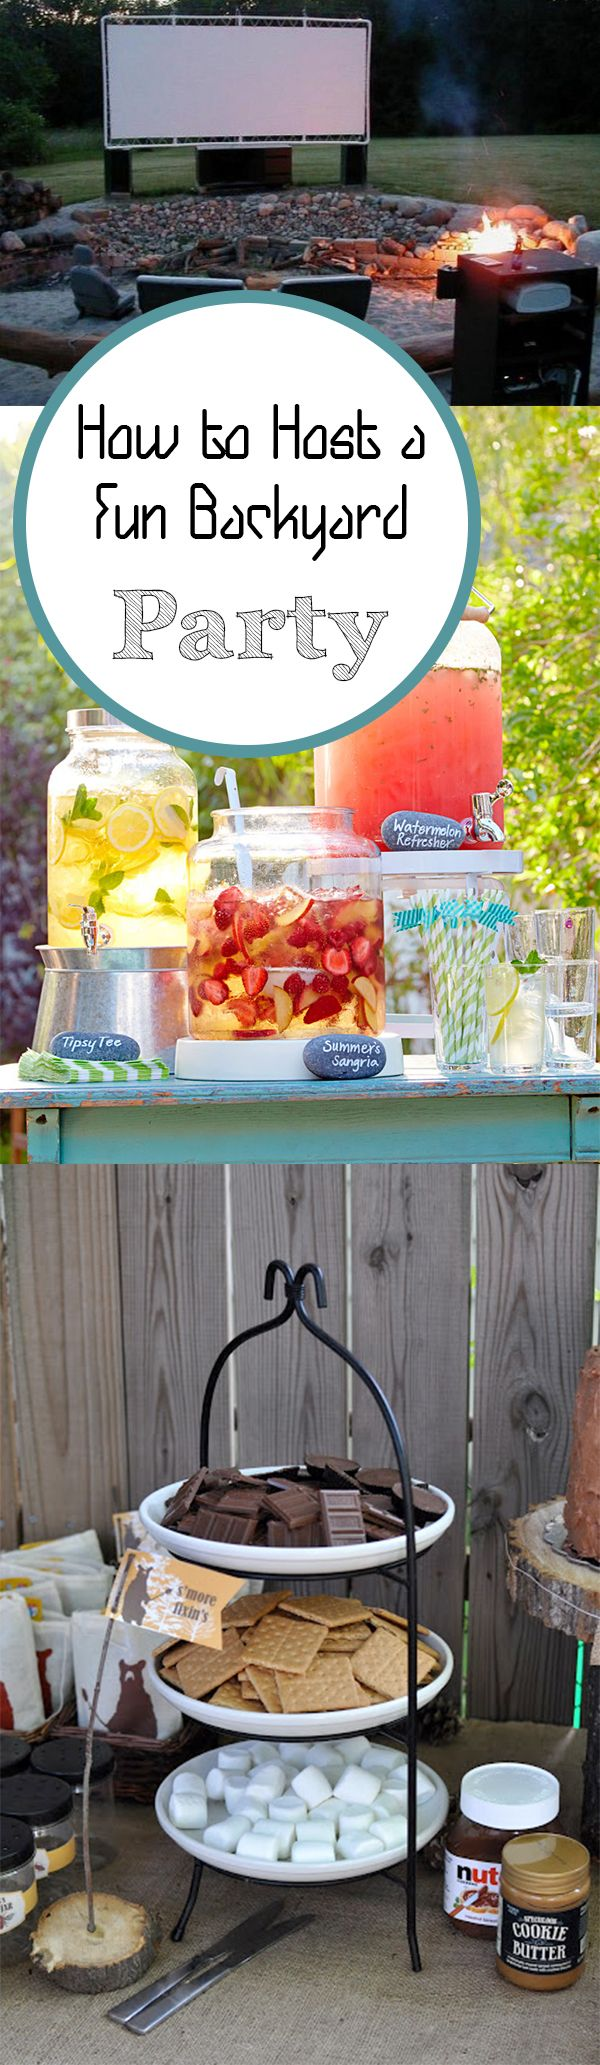 best 25 backyard parties ideas on pinterest backyard engagement